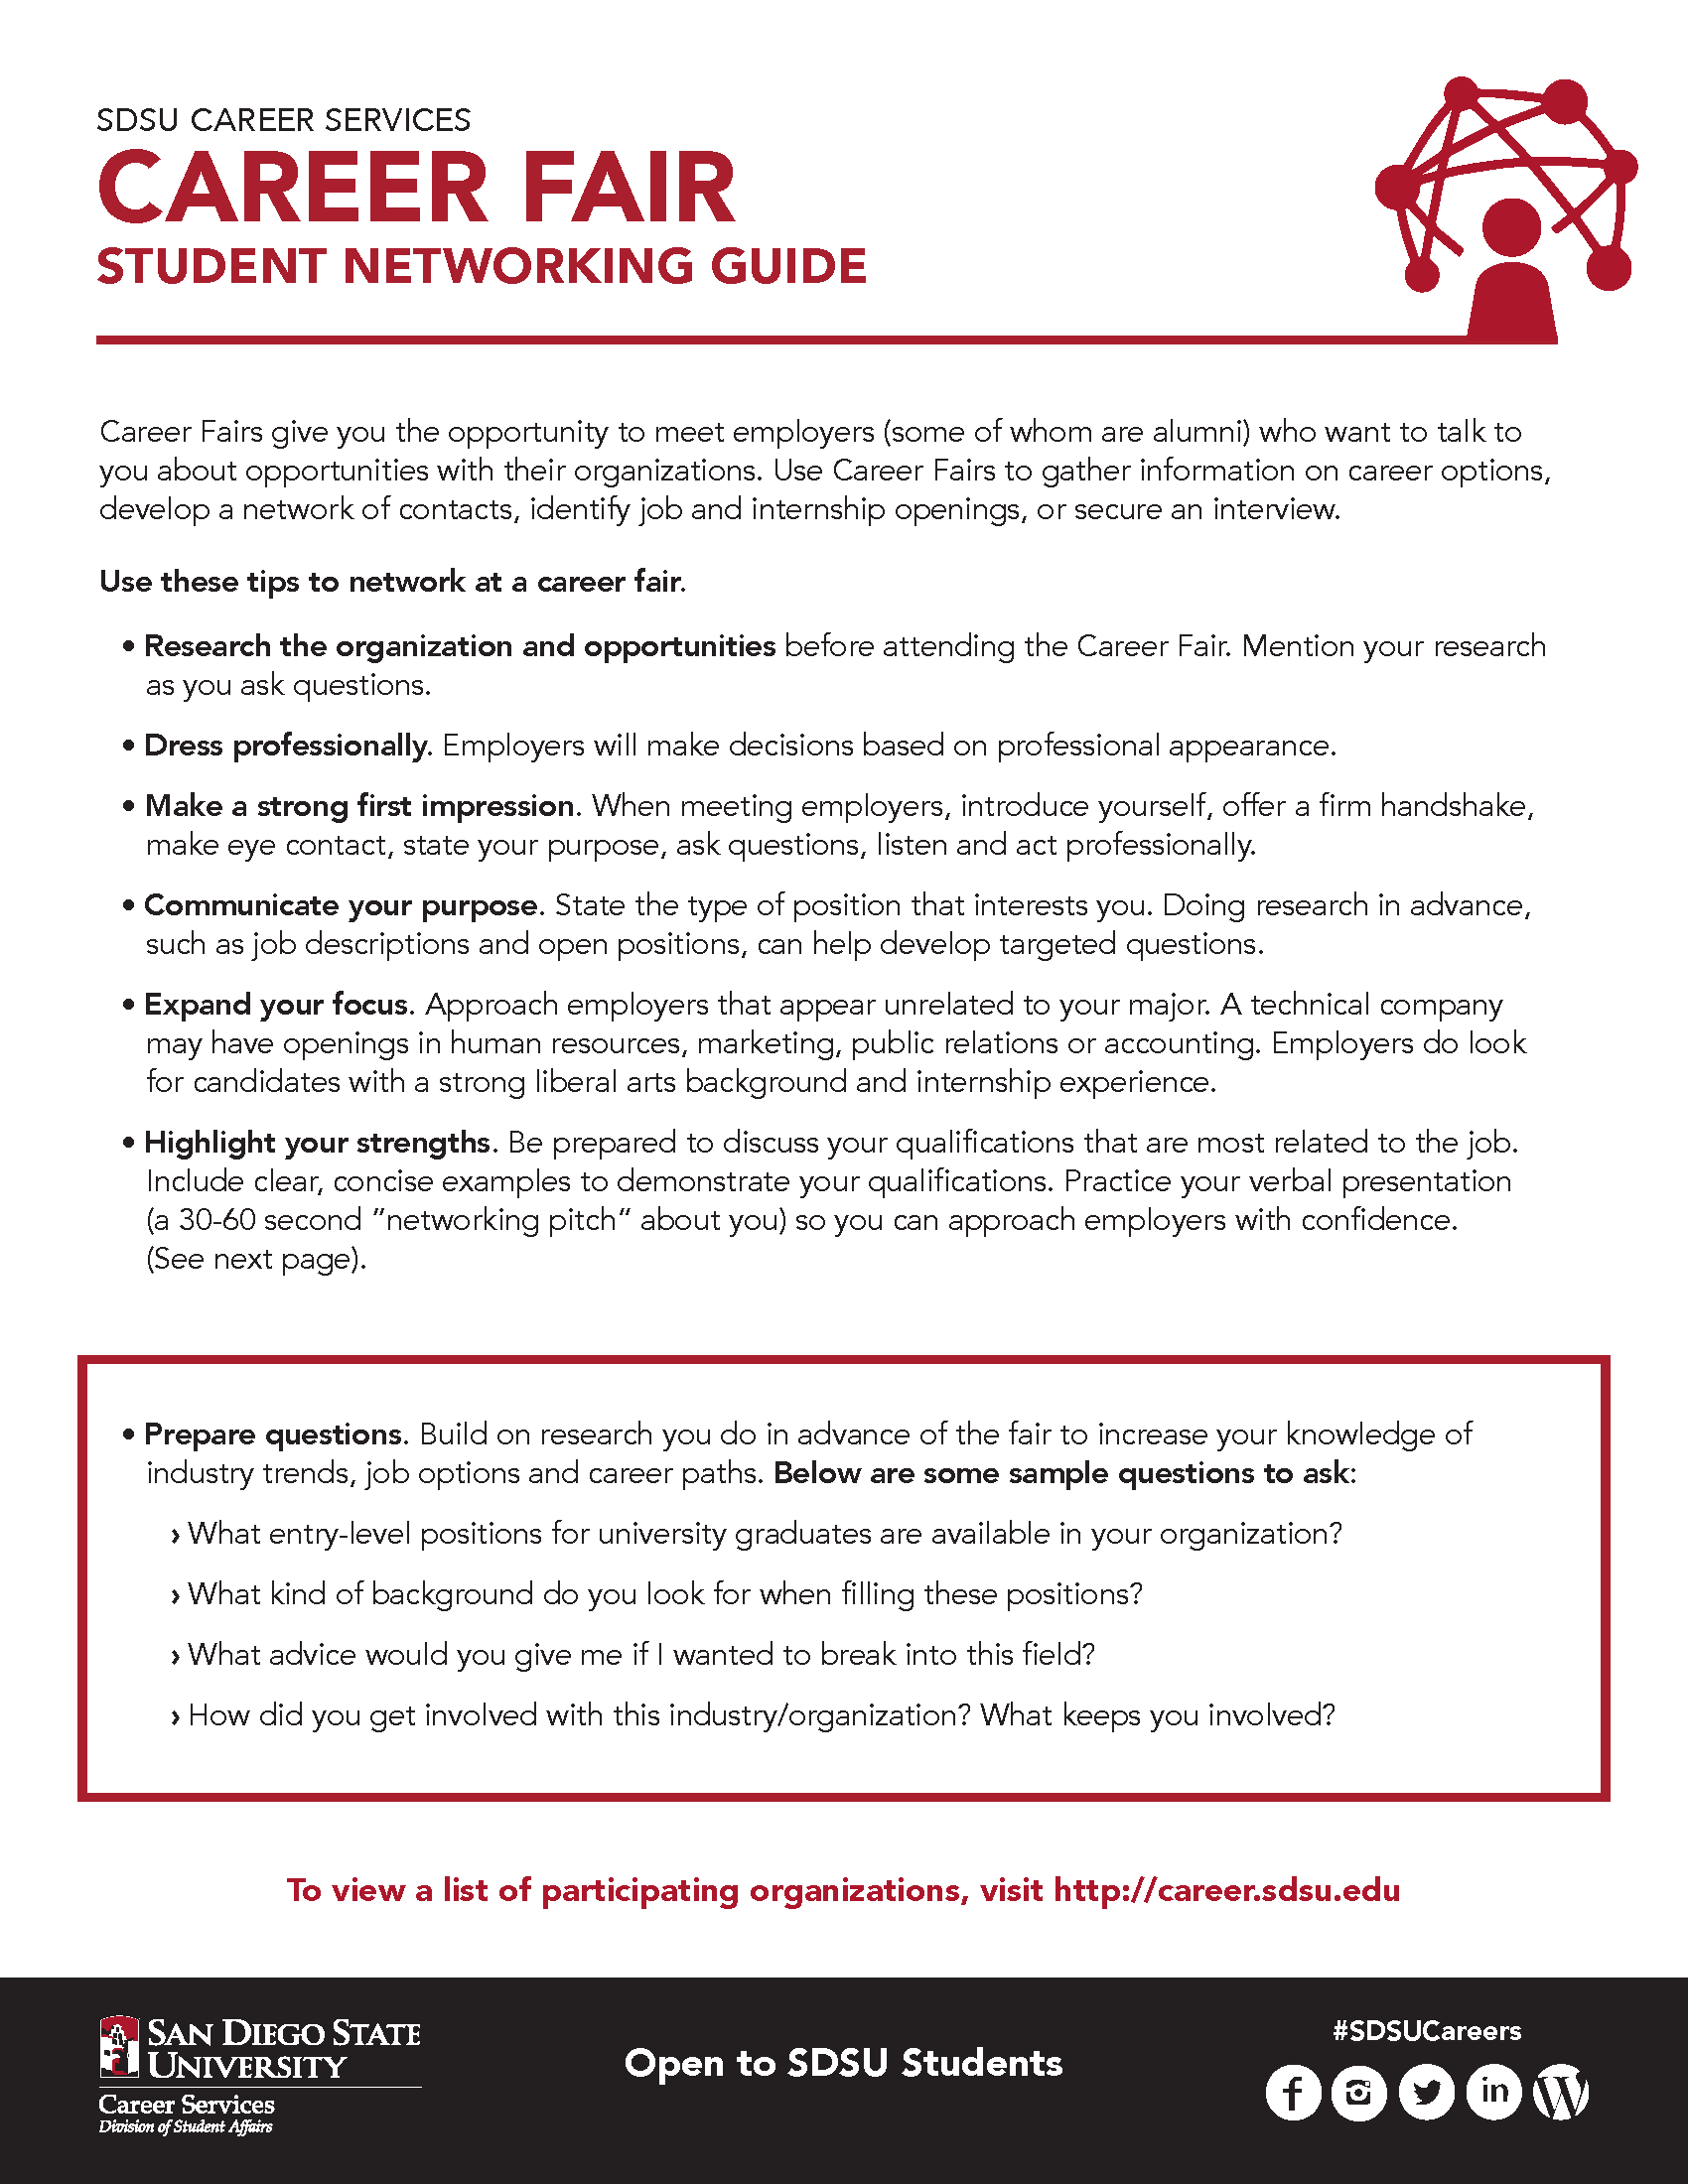 SDSU Career Fair Student Networking Guide page 1